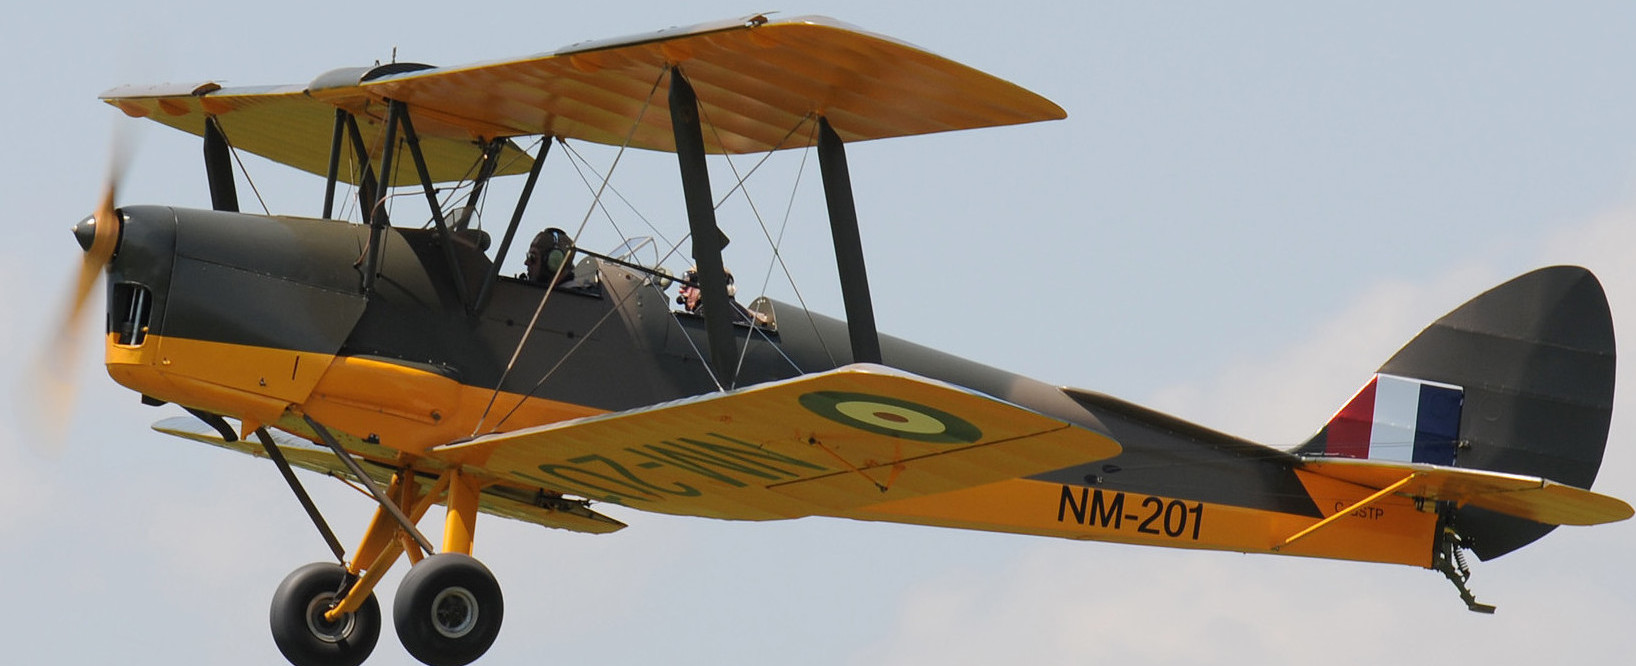 40 Tiger Moth by Eric Dumigan